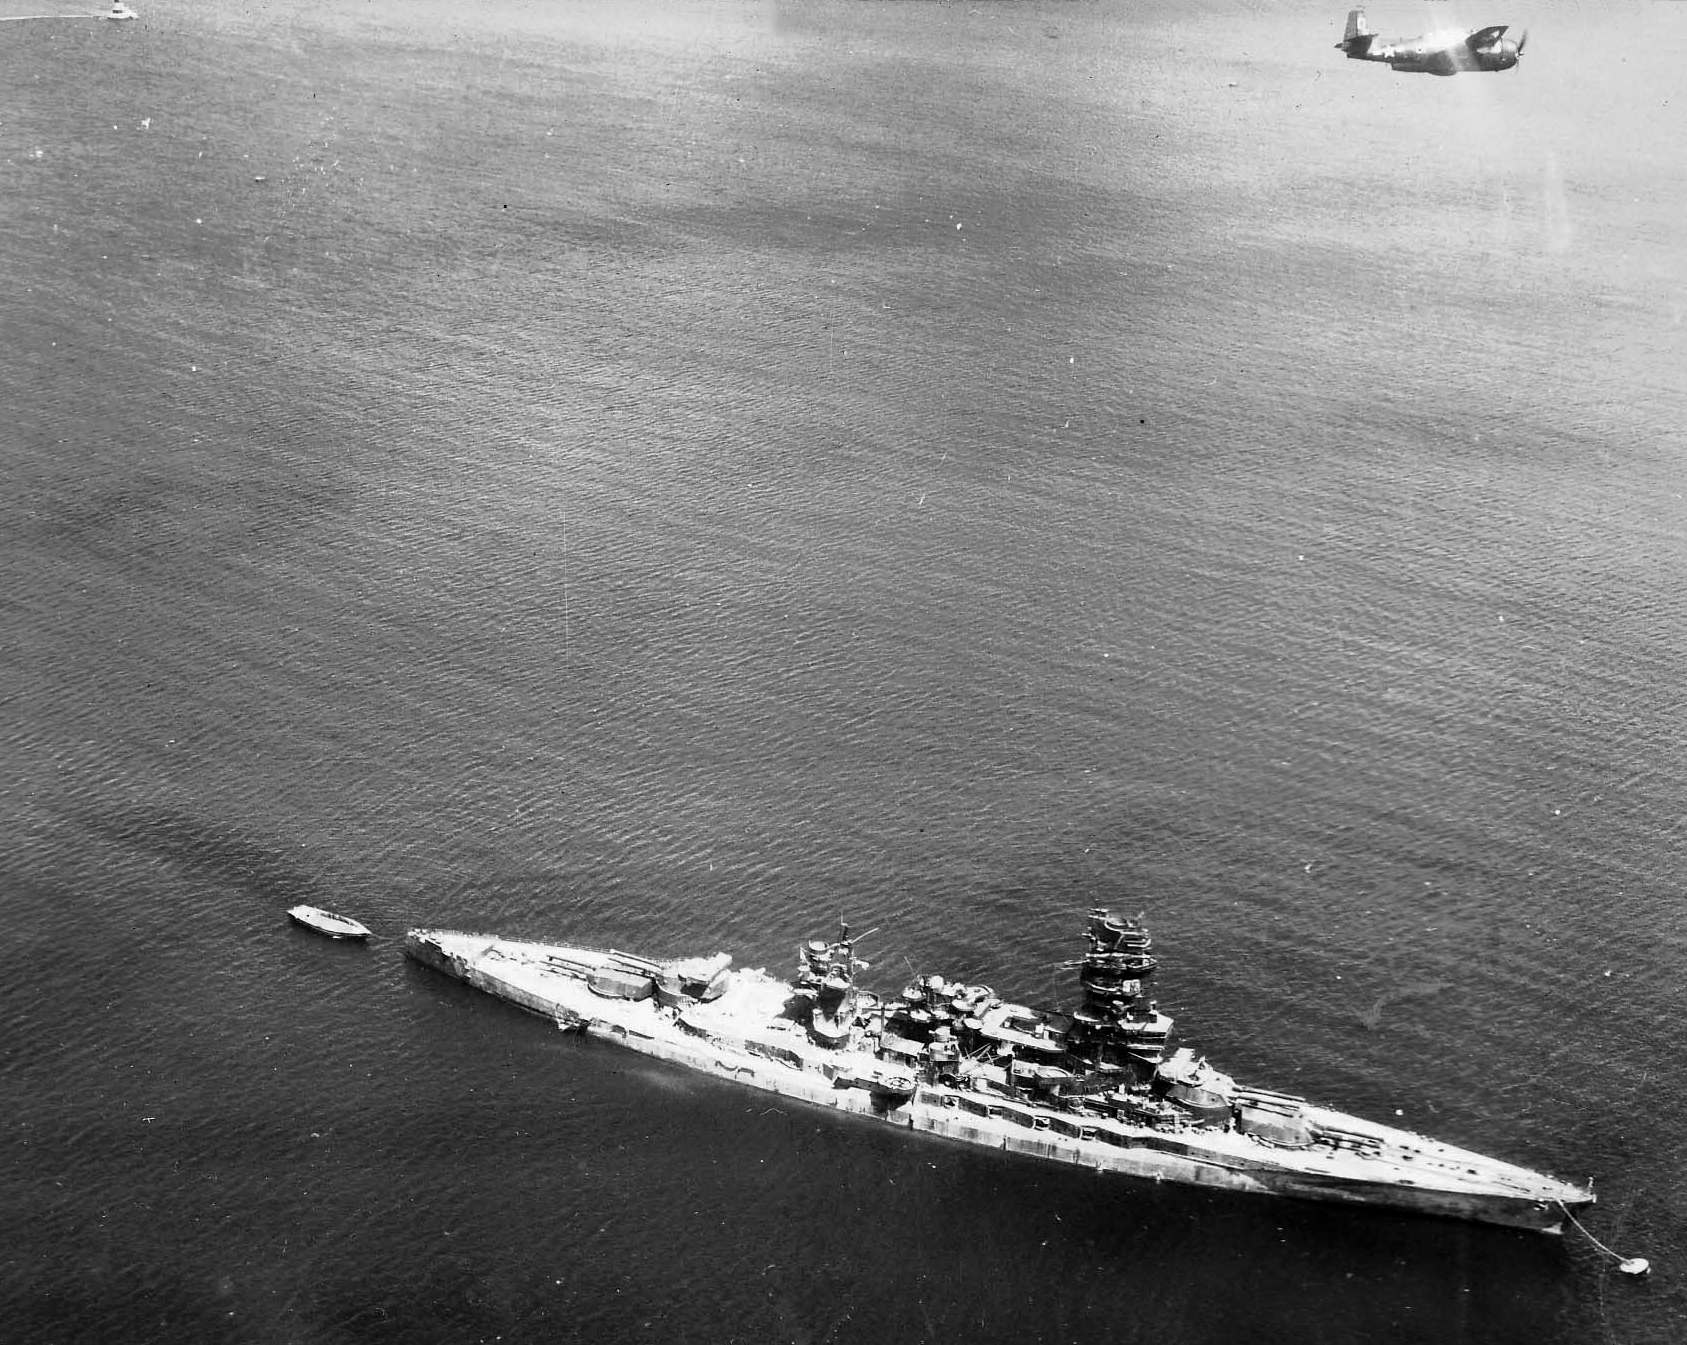 Japanese_battleship_Nagato_at_Yokosuka_1945.jpeg